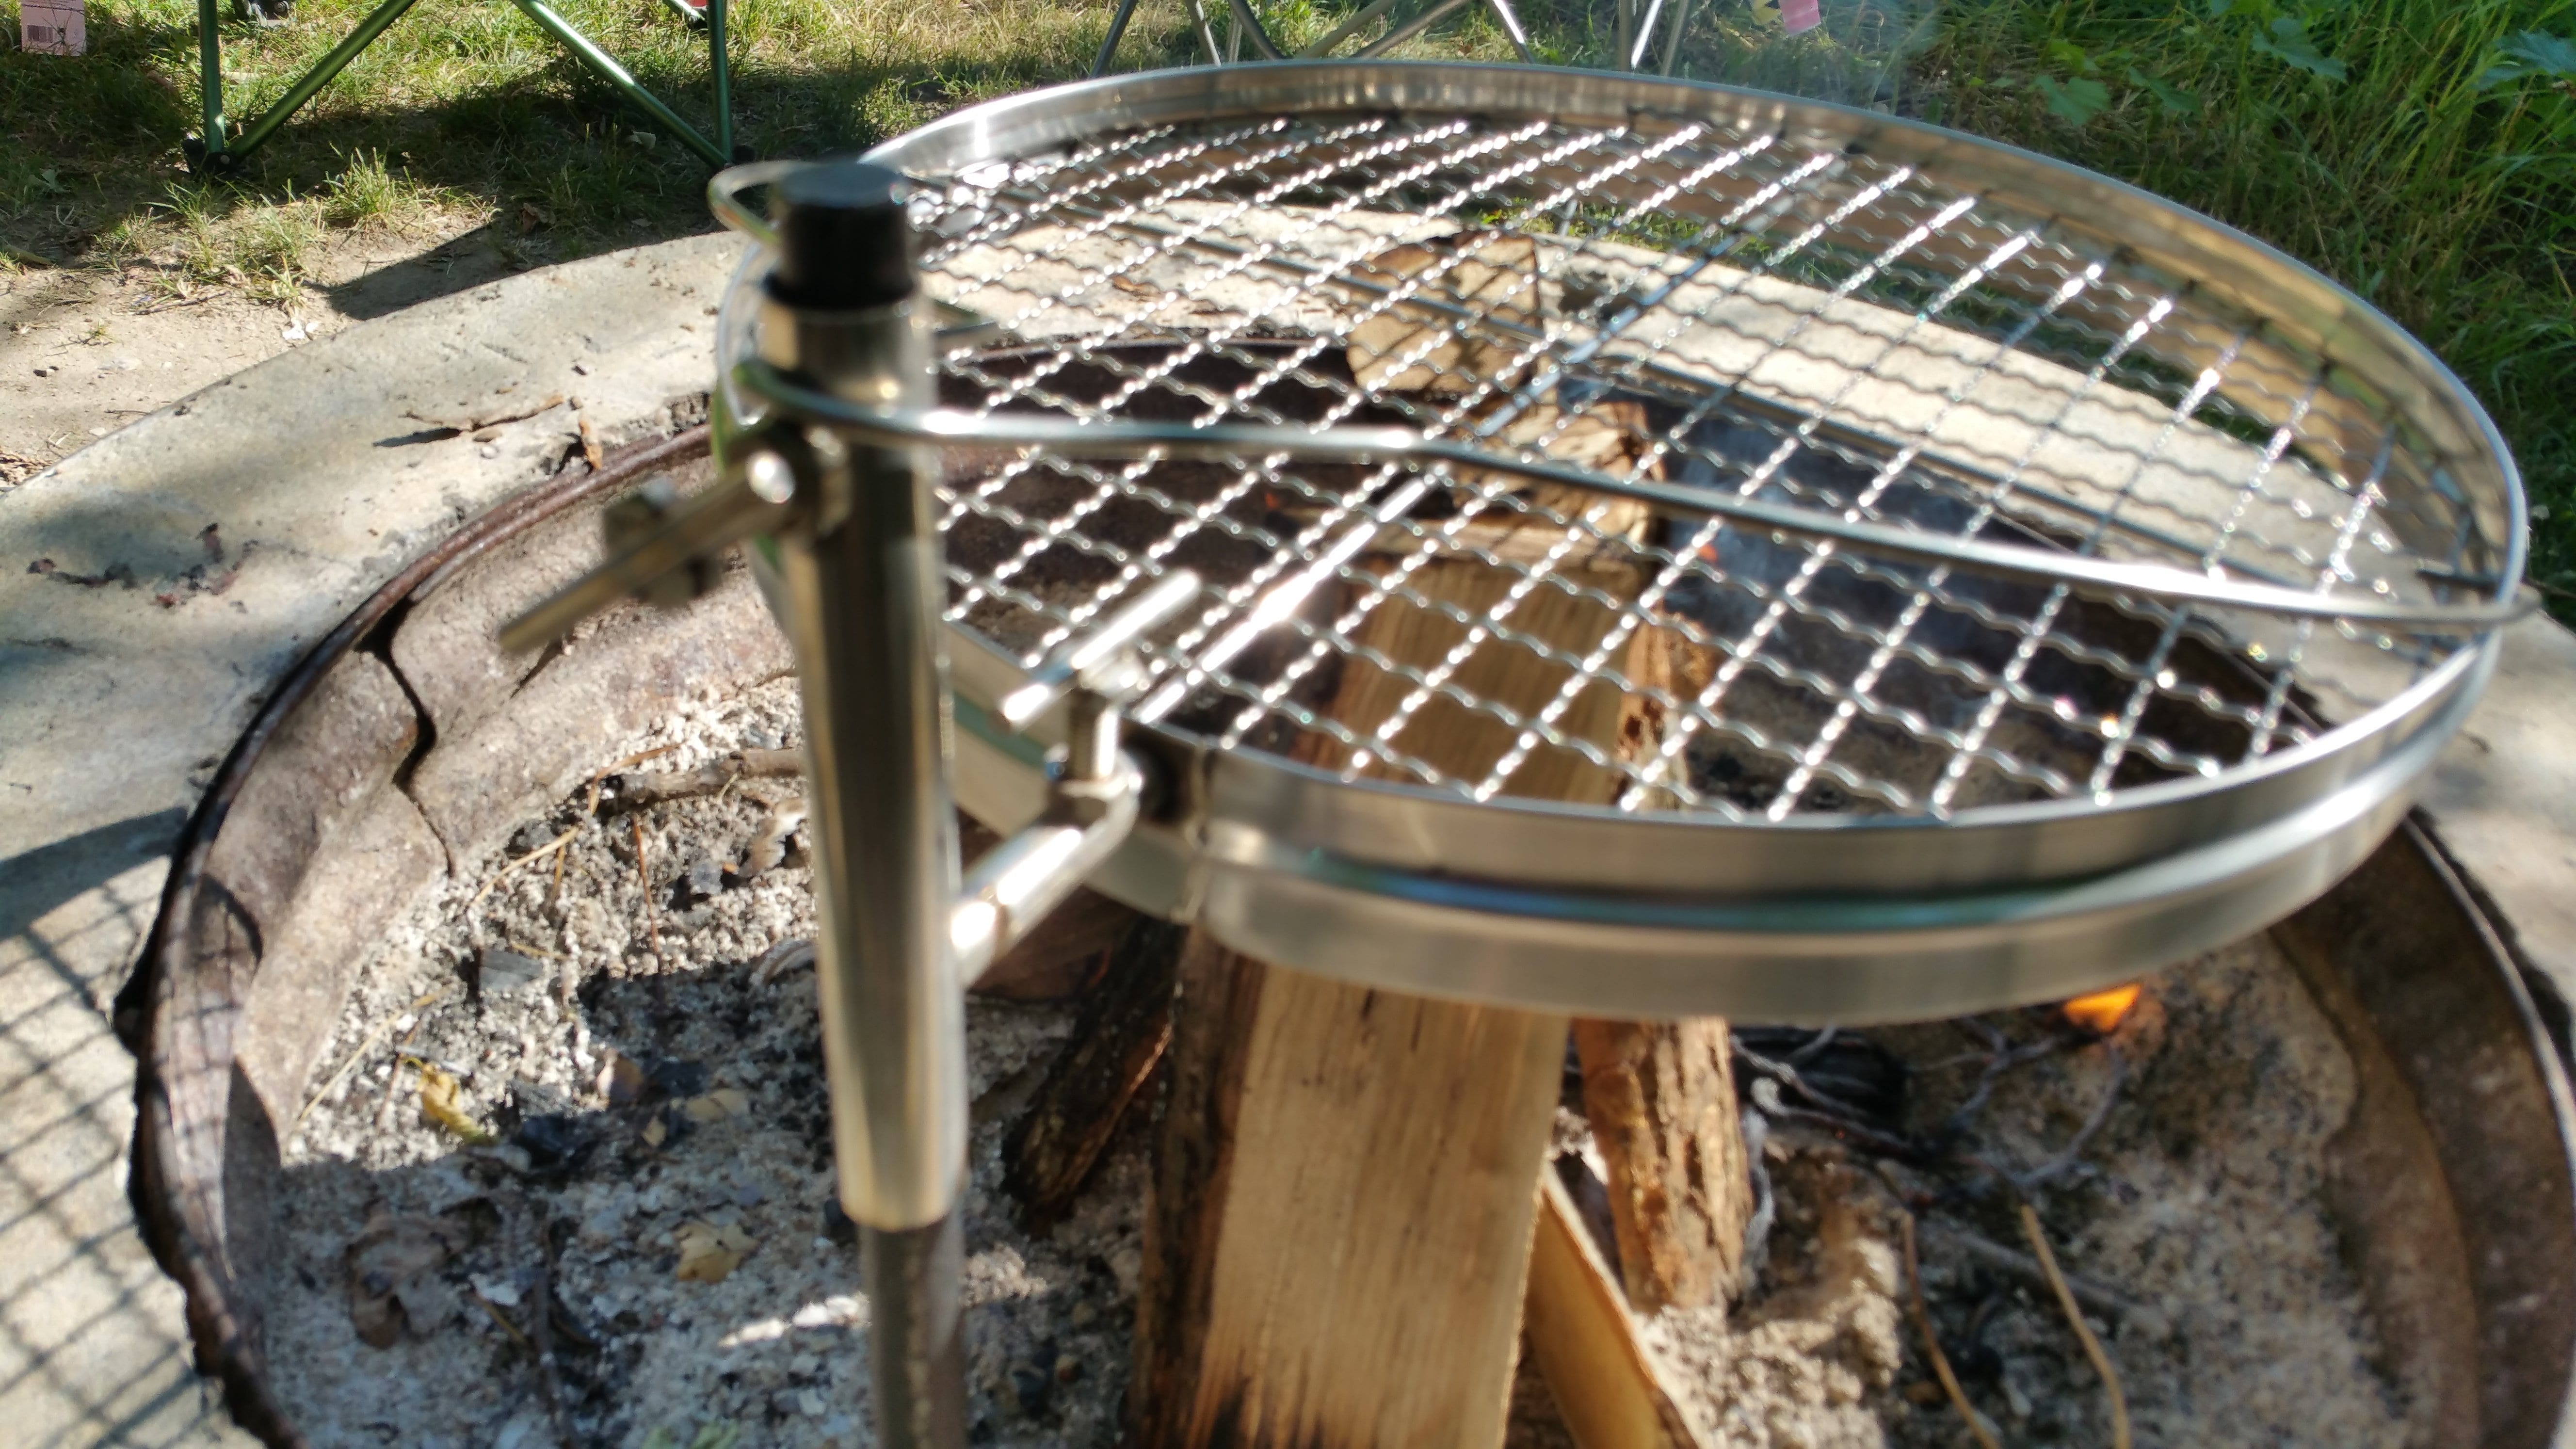 Camerons Open Fire Pit Grill Review - Active Gear Review